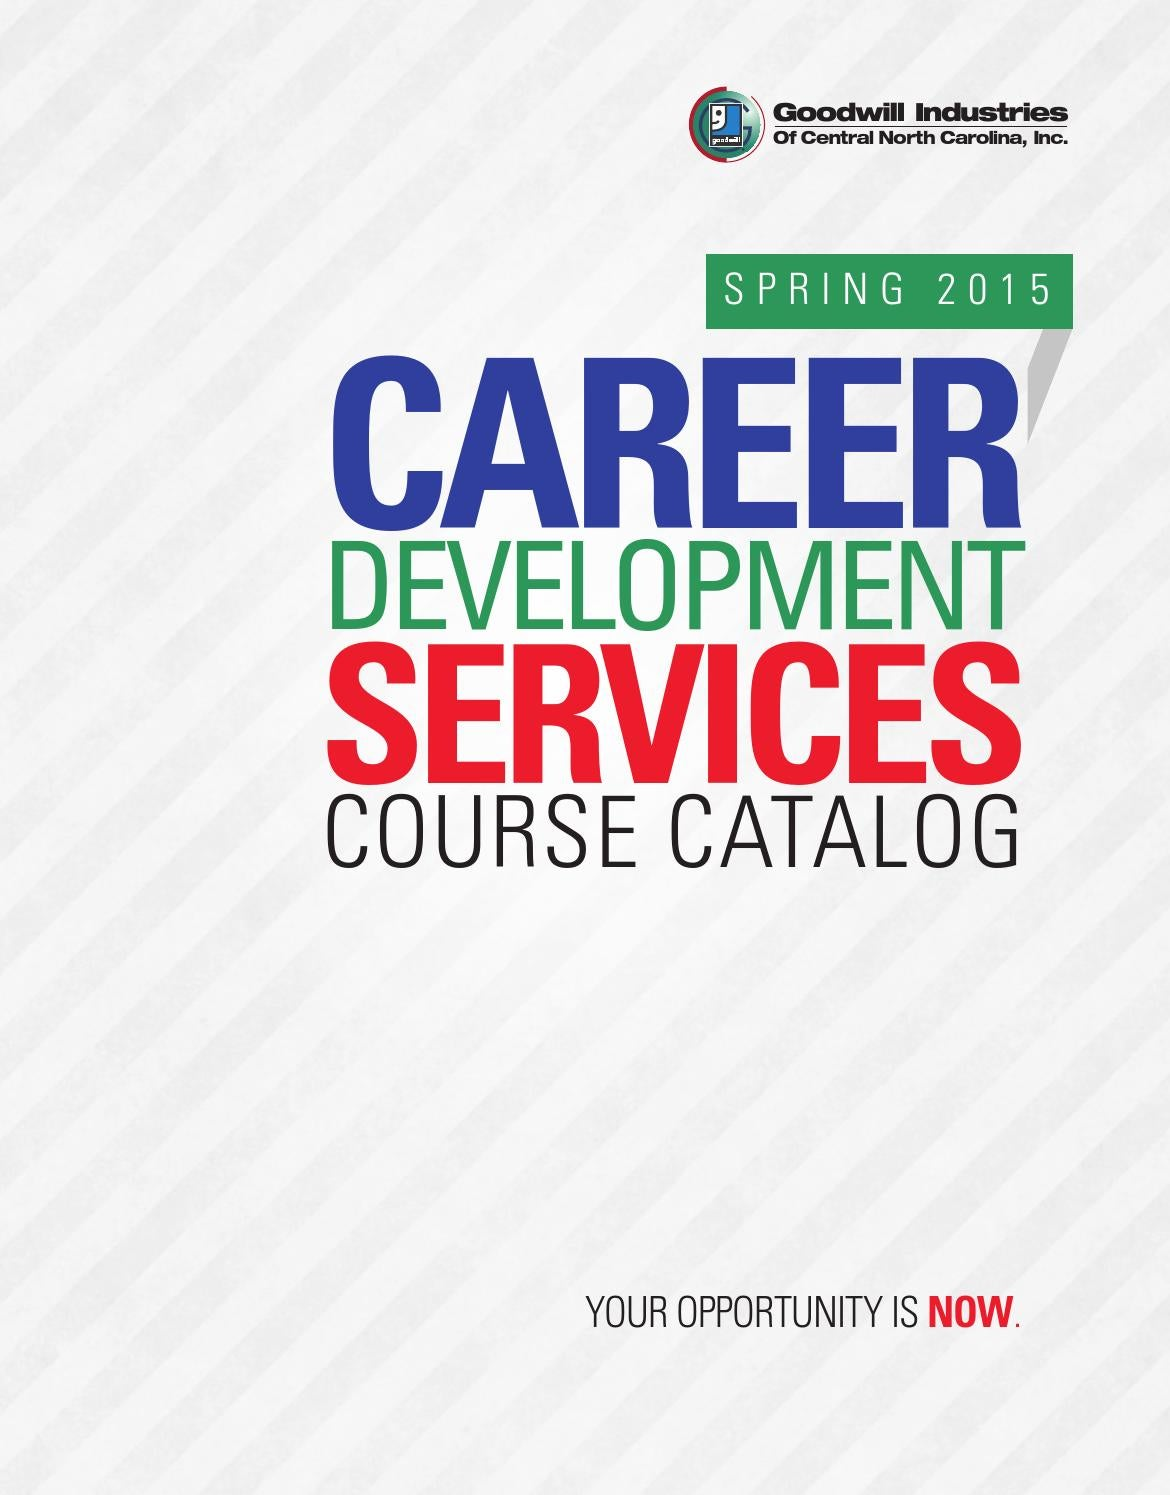 Triad goodwill spring course catalog by triad goodwill issuu 1betcityfo Choice Image